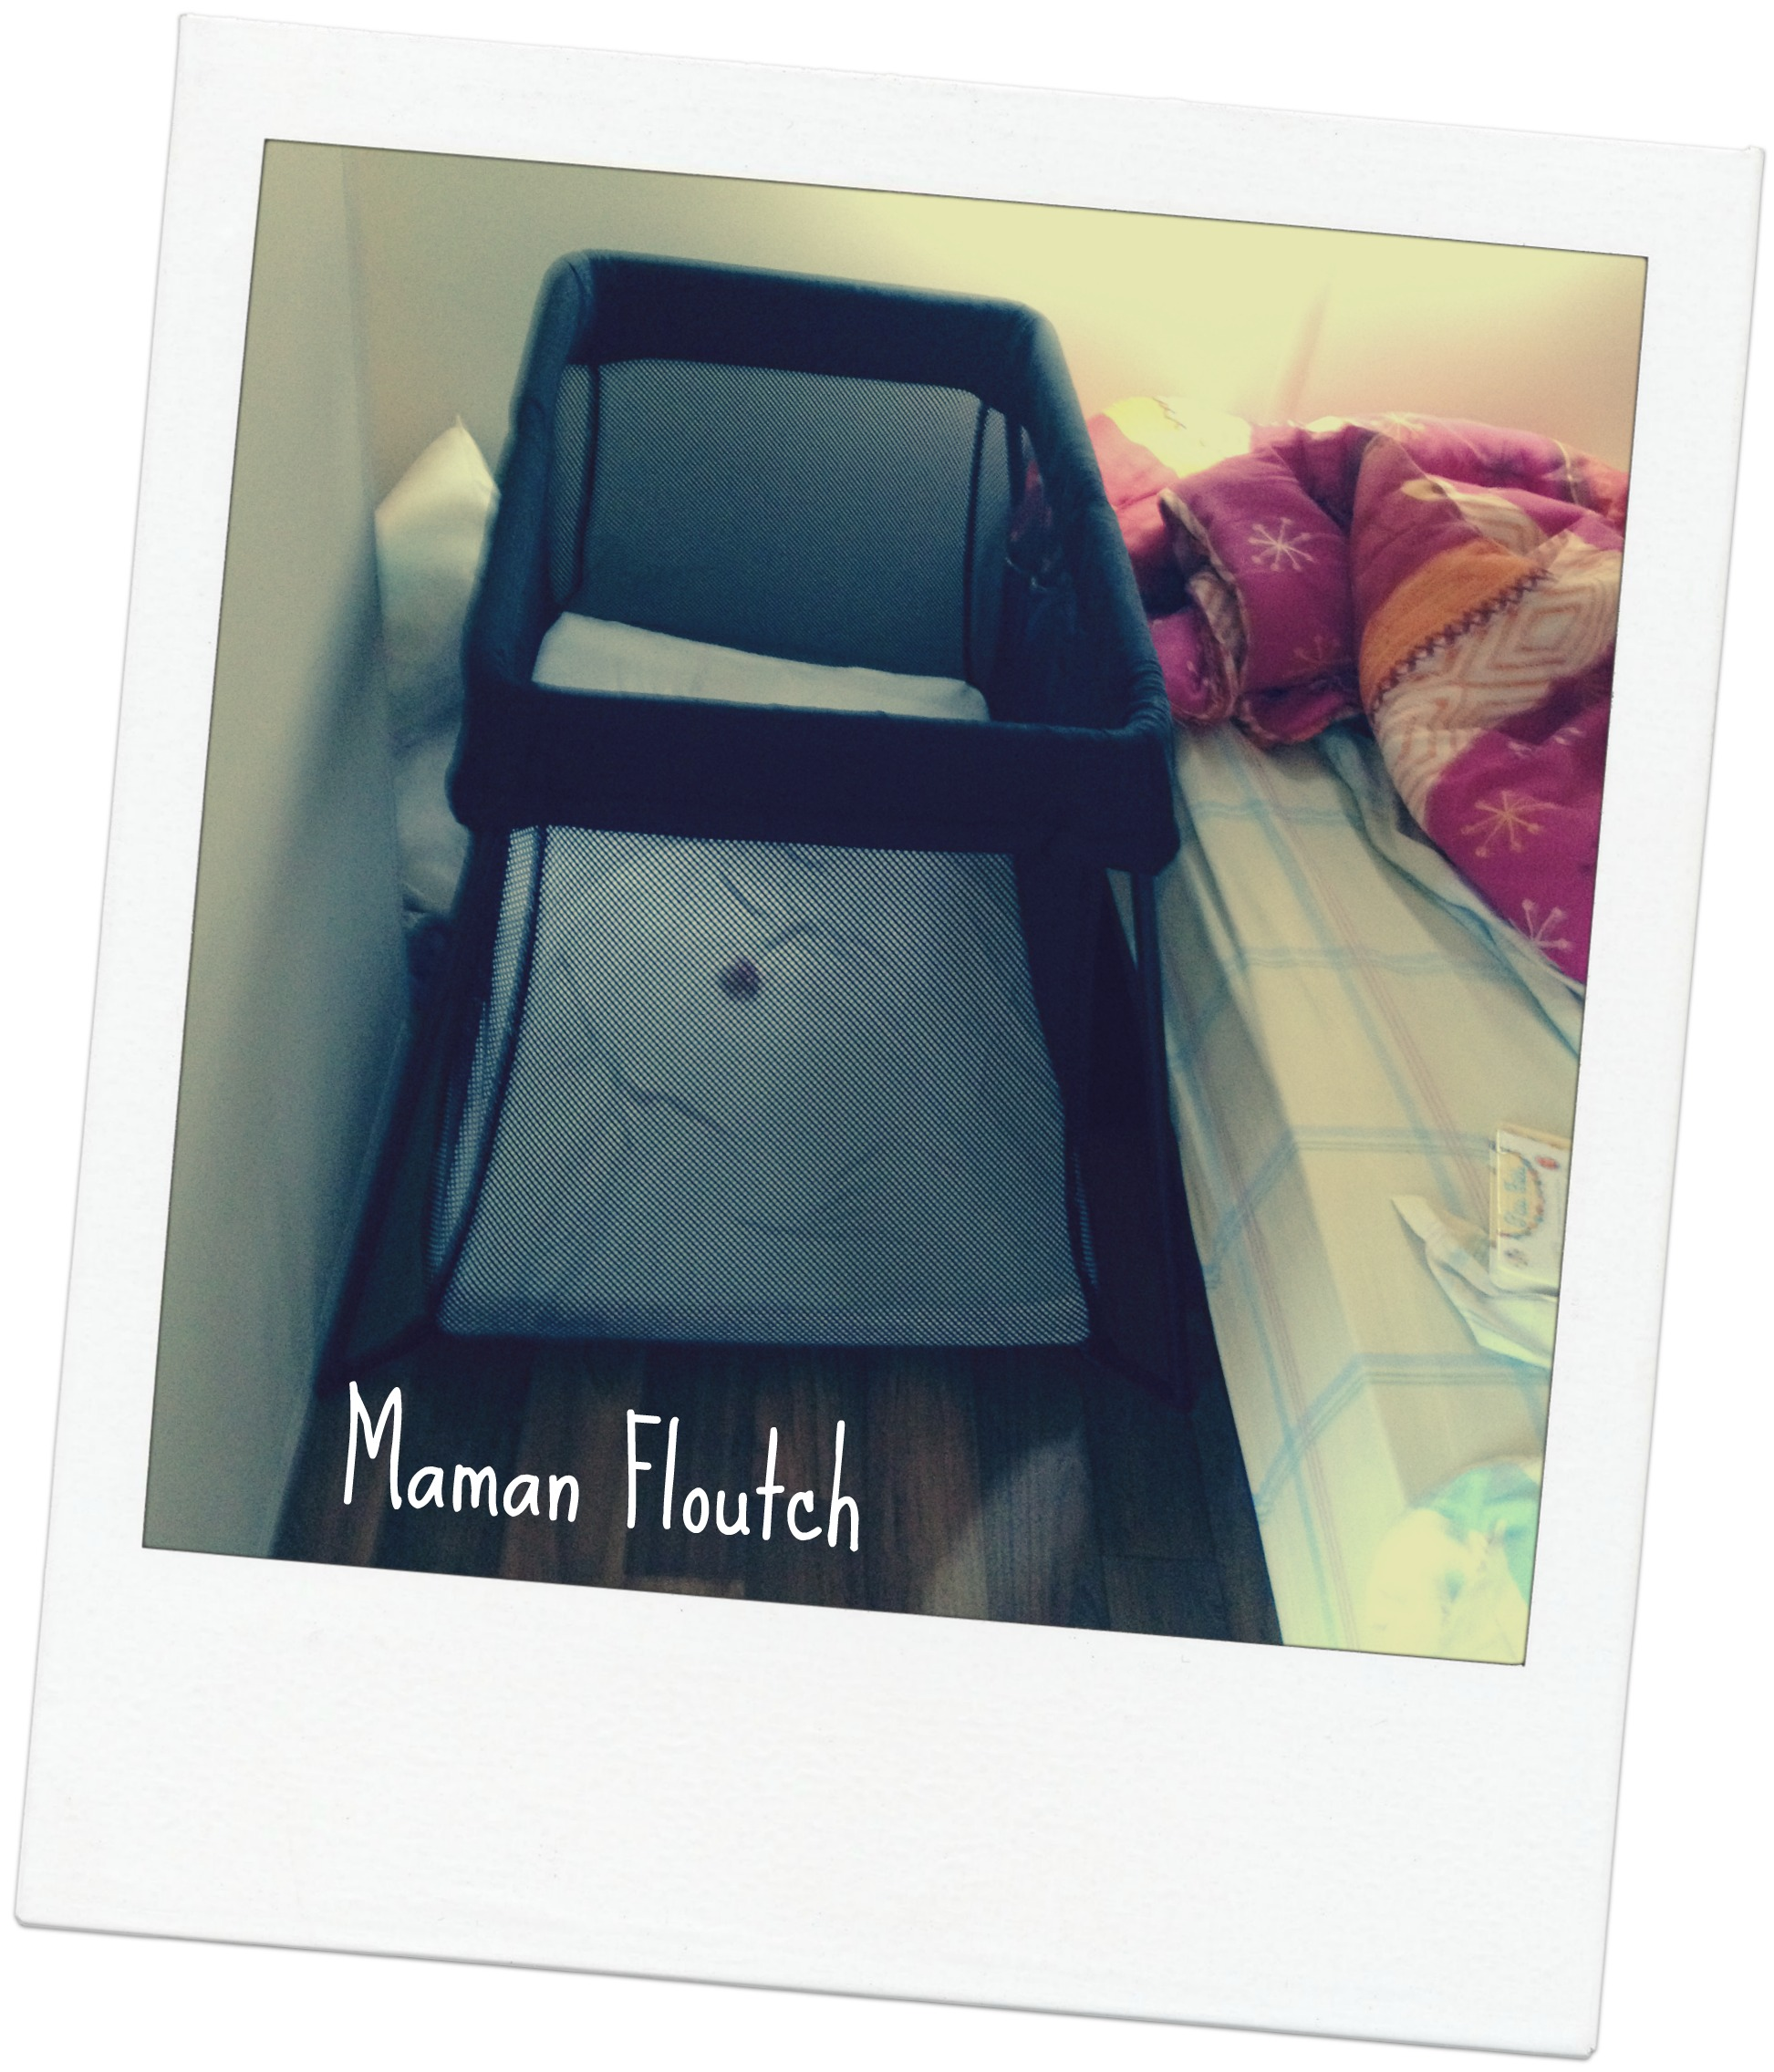 le lit parapluie light de babybjorn chez les floutch. Black Bedroom Furniture Sets. Home Design Ideas